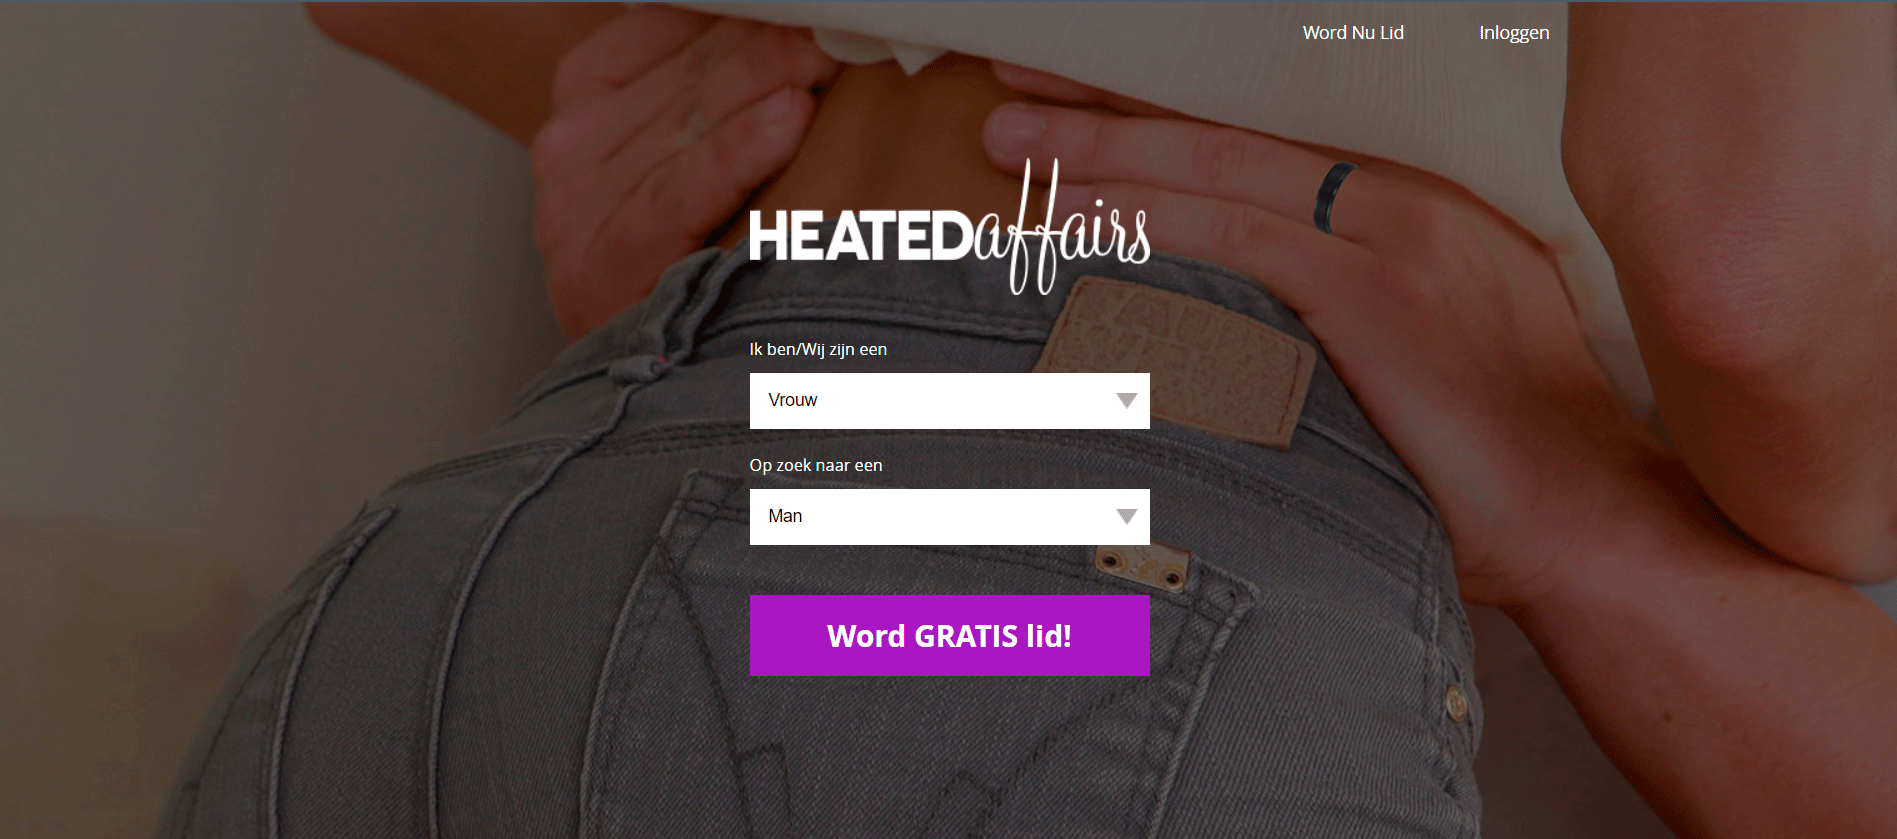 Heated Affairs Review: Where Things Get Hot